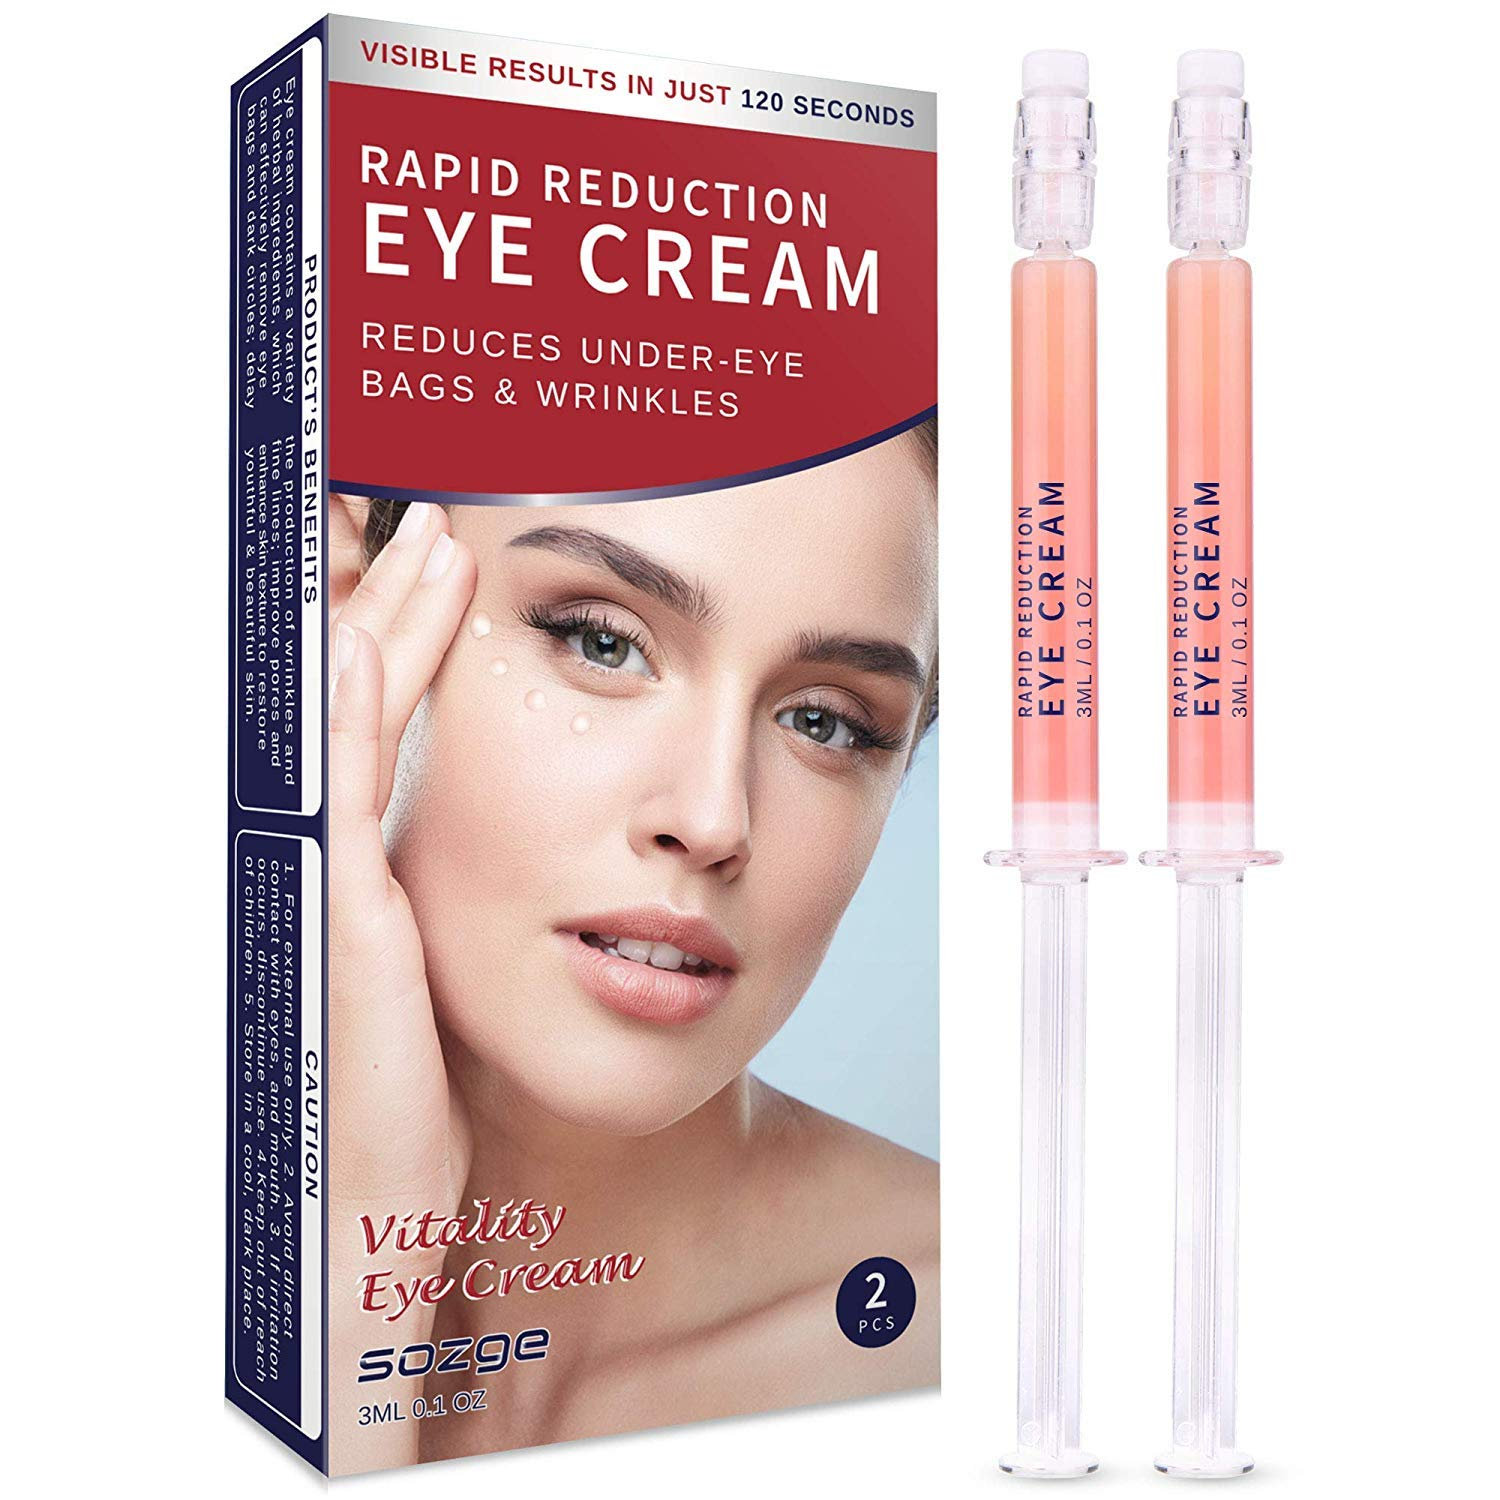 Rapid Reduction Eye Cream - Under-Eye Bags Treatment - Instant Results within 120 Seconds - Fights Wrinkles and Fine Lines - Reduces Appearance of Dark Circles by SOZGE